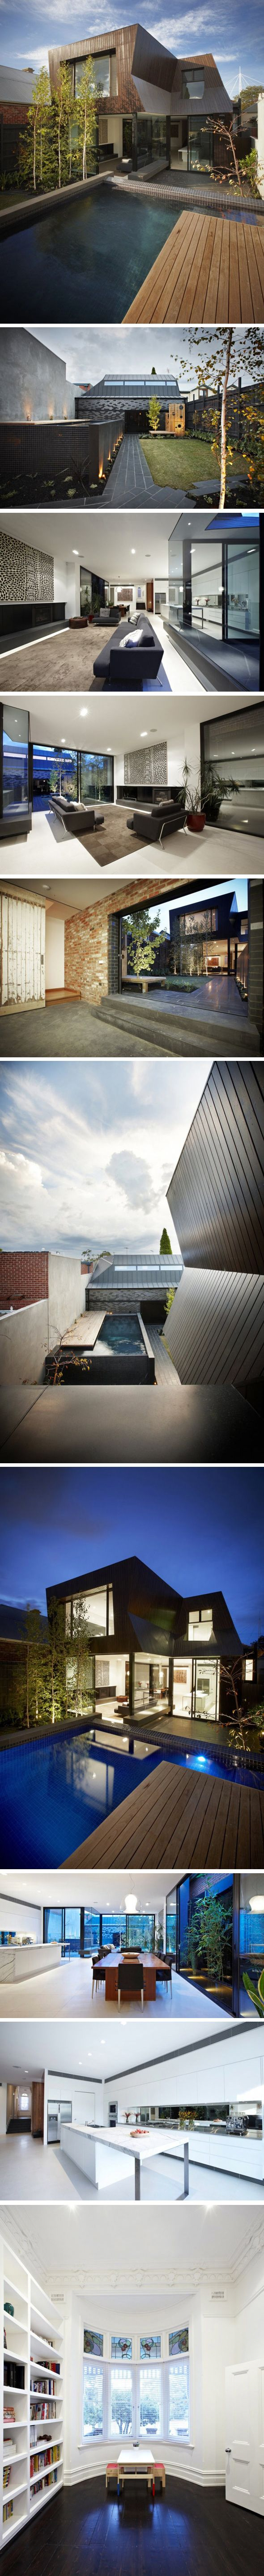 The-Enclave-House-BKK-Architects-2